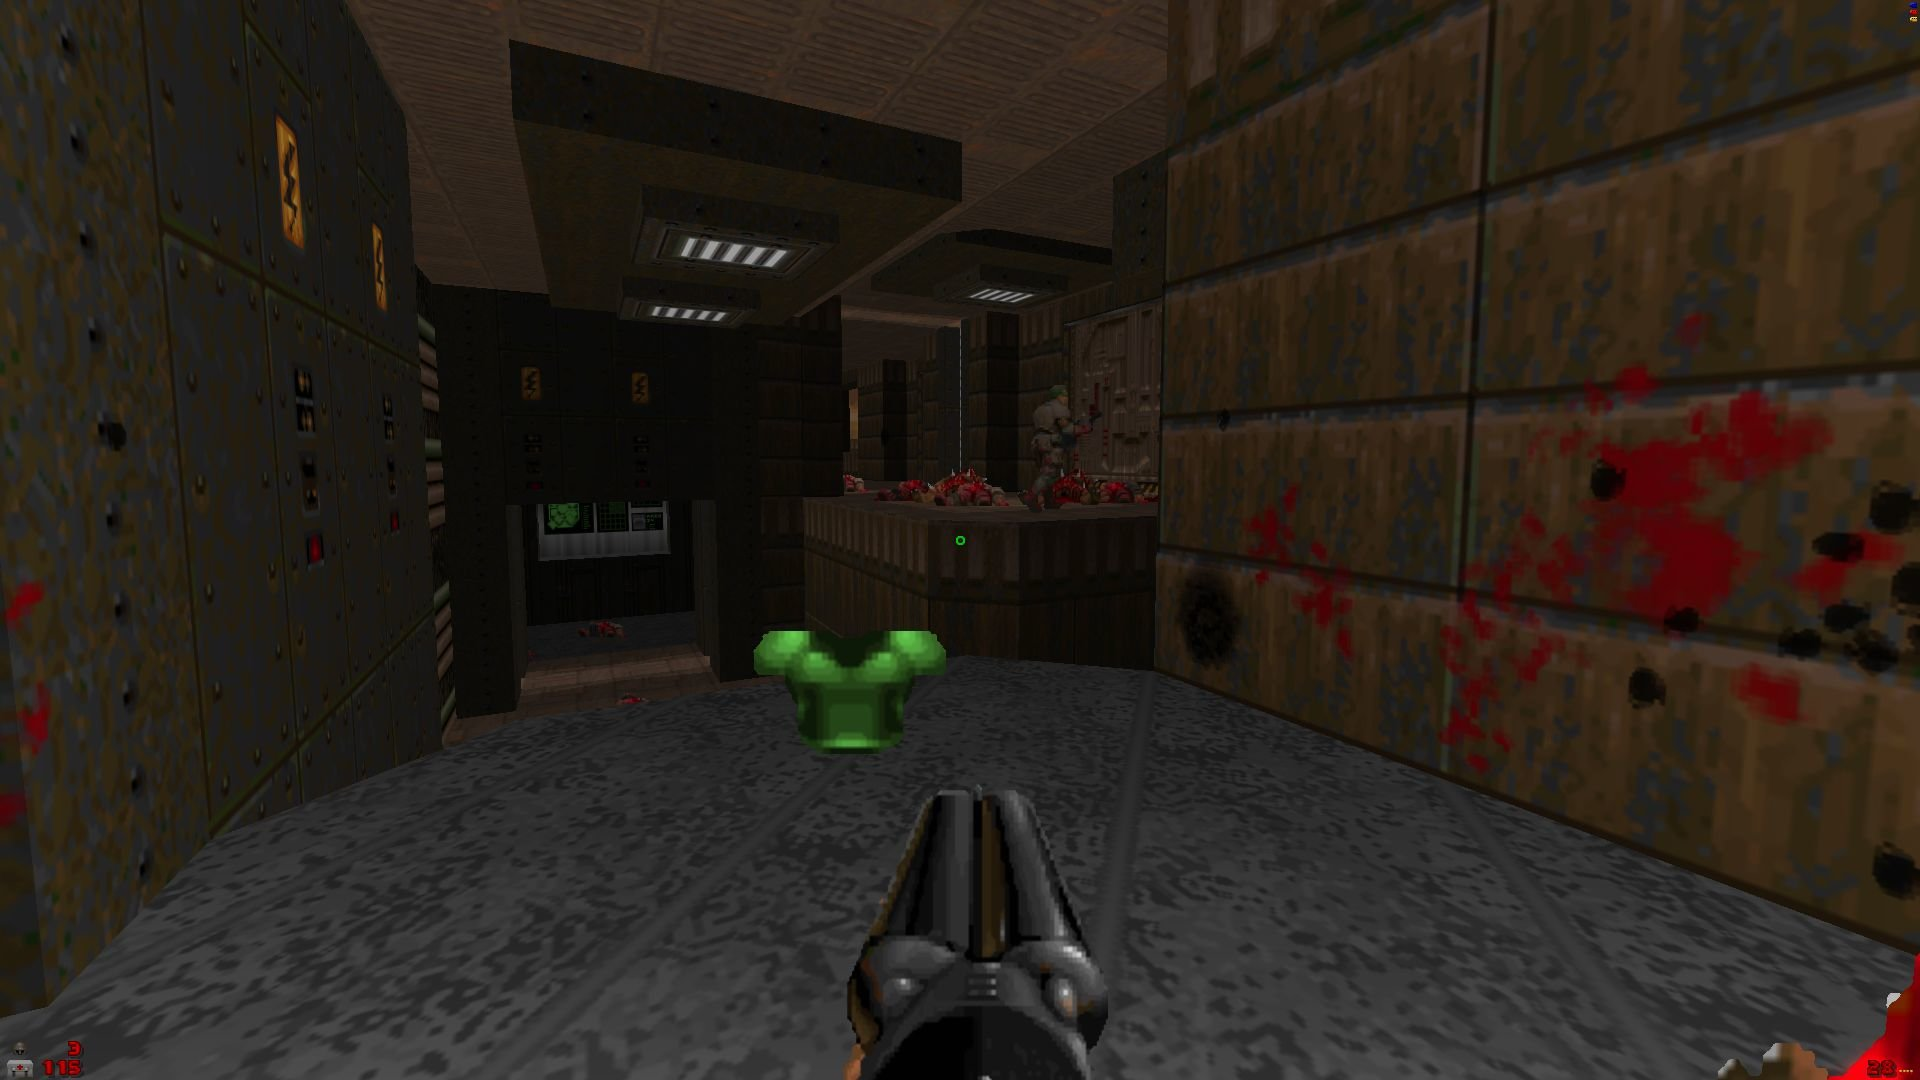 Screenshot_Doom_20190630_124427_1.jpg.1694f444dd8572cf50345944f707a741.jpg